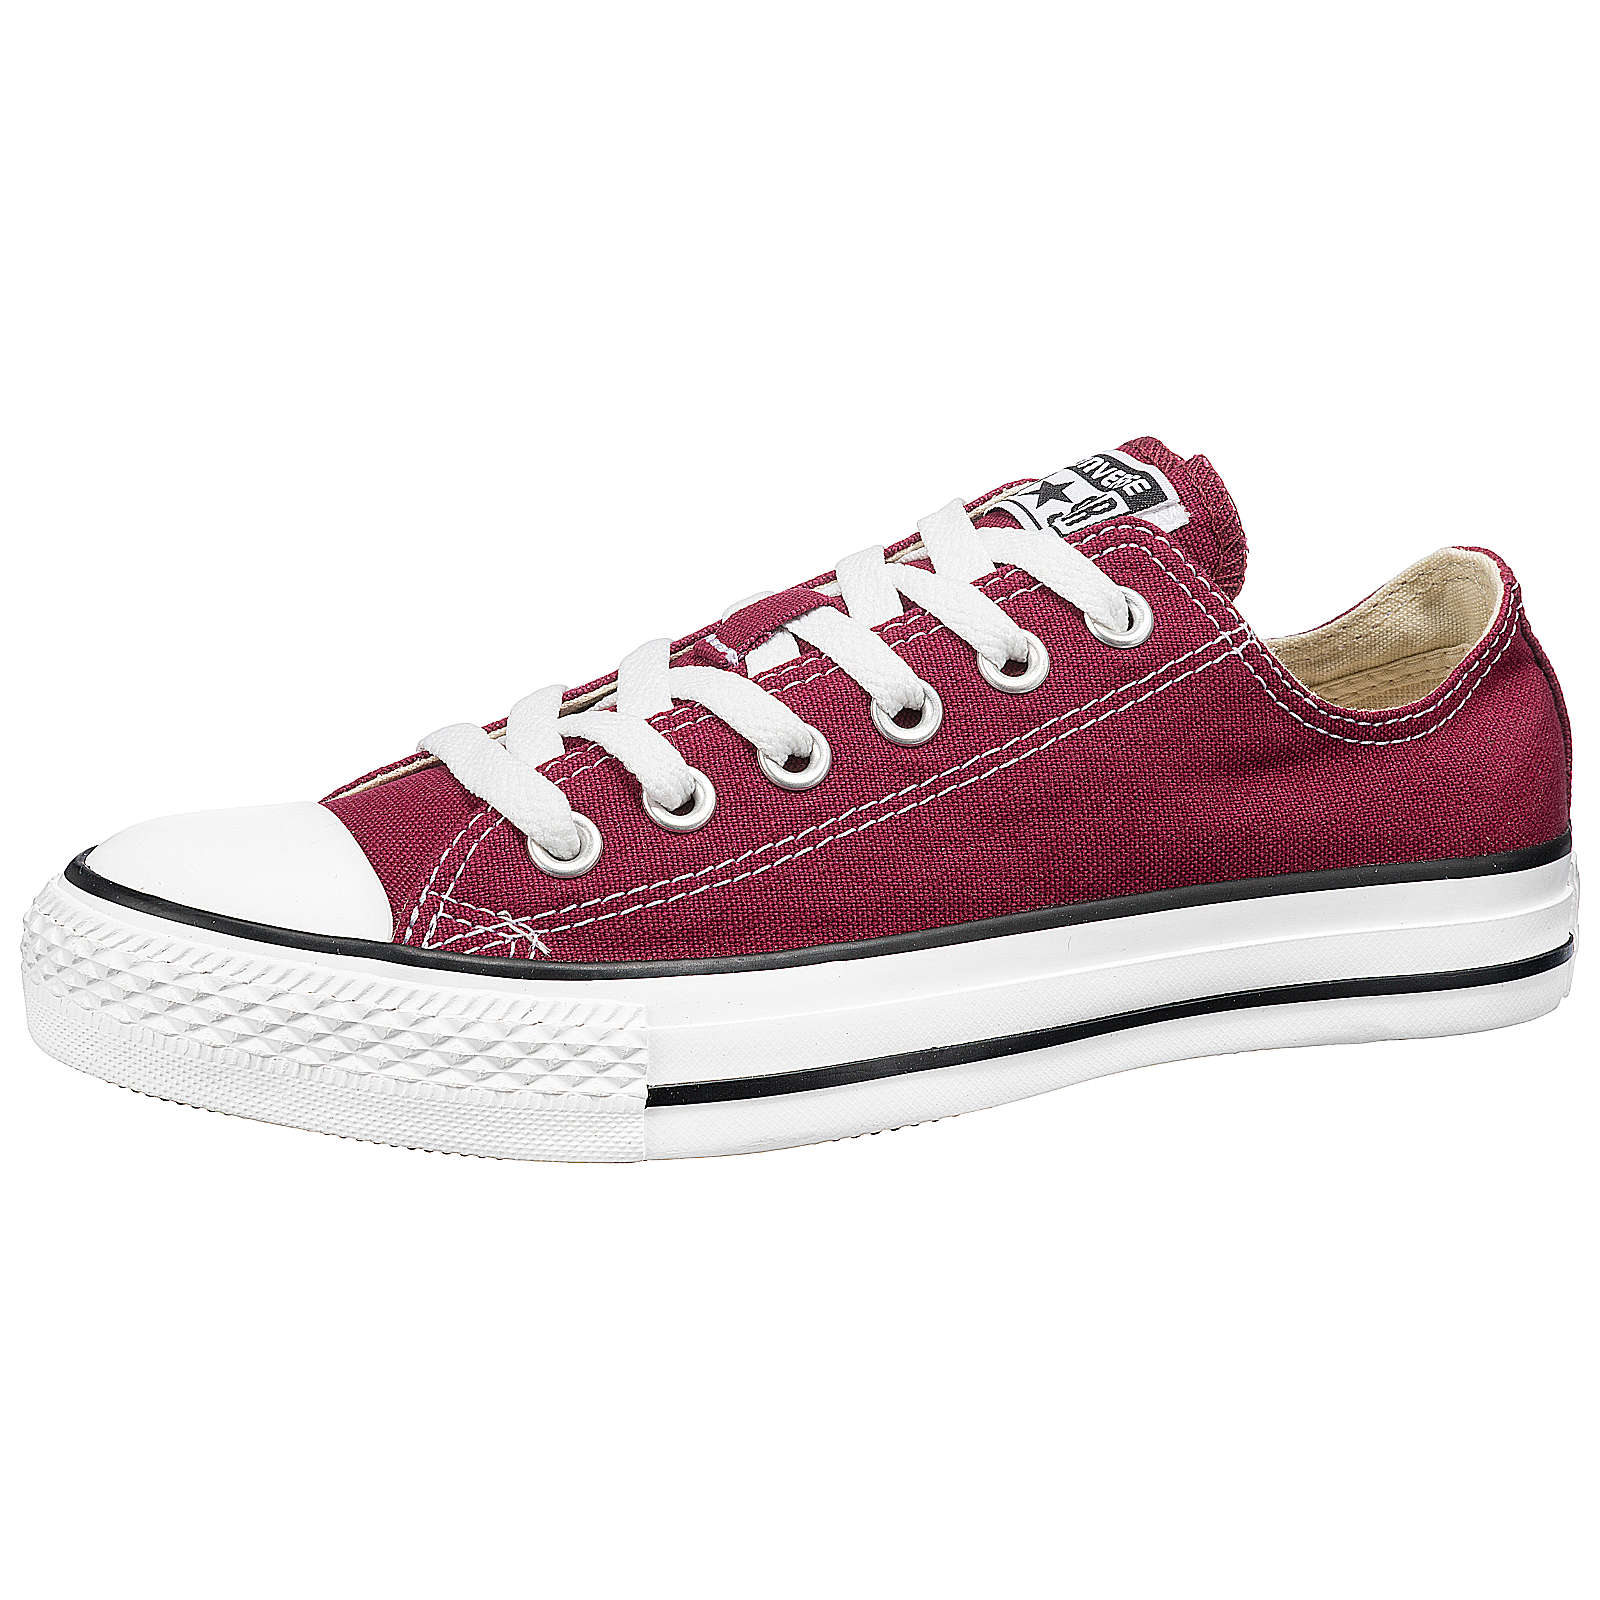 CONVERSE All Star Ox Sneakers Low dunkelrot Gr. 36